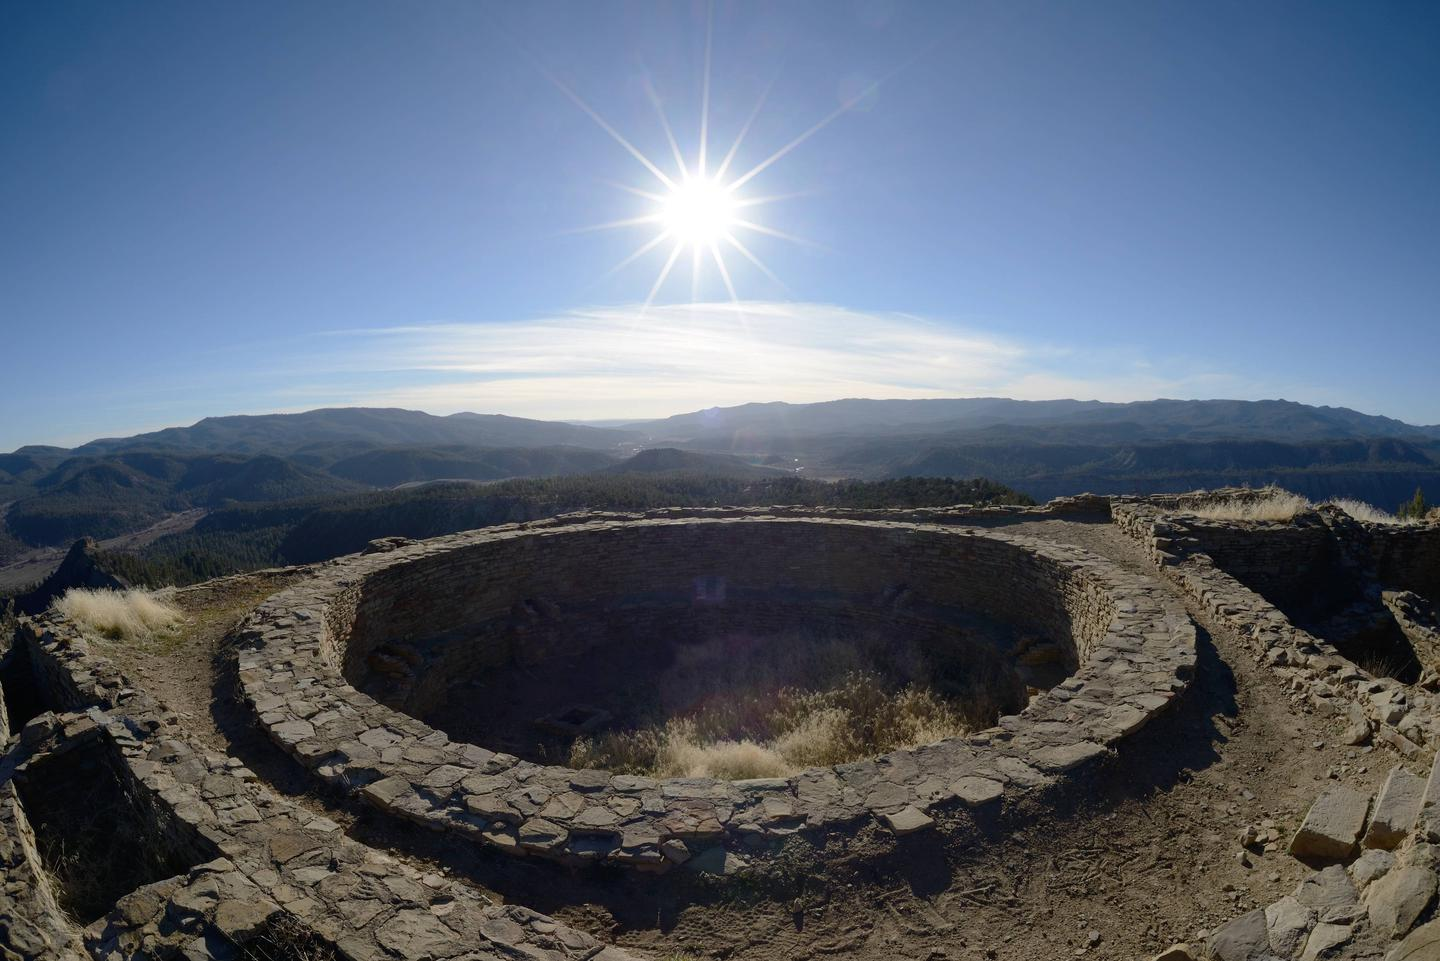 CHIMNEY ROCK NATIONAL MONUMENTGet a view into an ancient world at Chimney Rock National Monument!